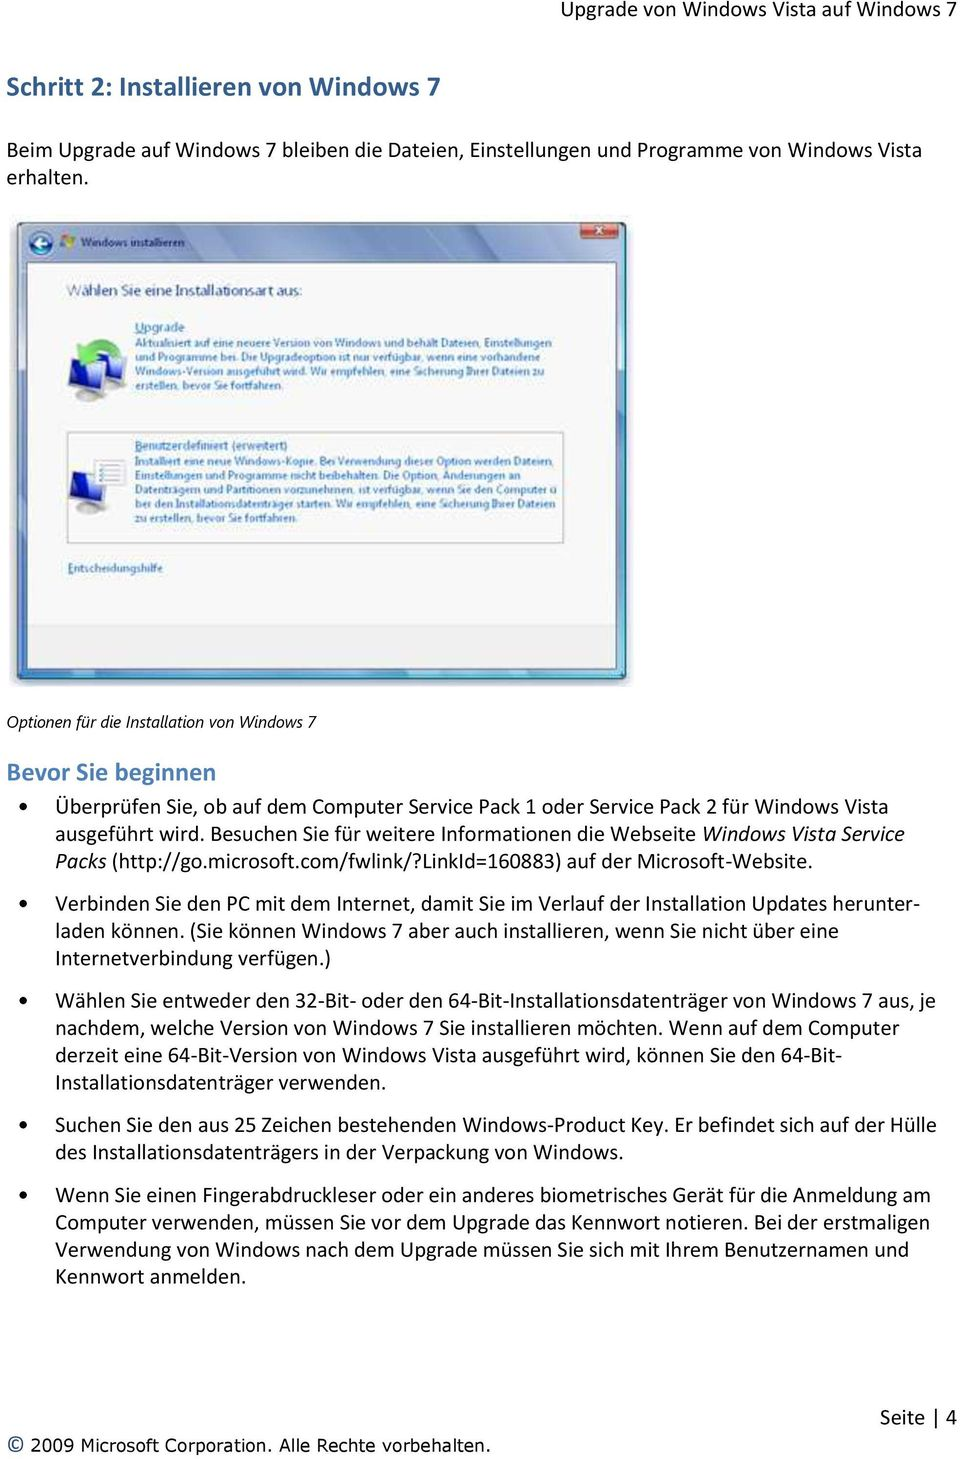 Besuchen Sie für weitere Informationen die Webseite Windows Vista Service Packs (http://go.microsoft.com/fwlink/?linkid=160883) auf der Microsoft-Website.